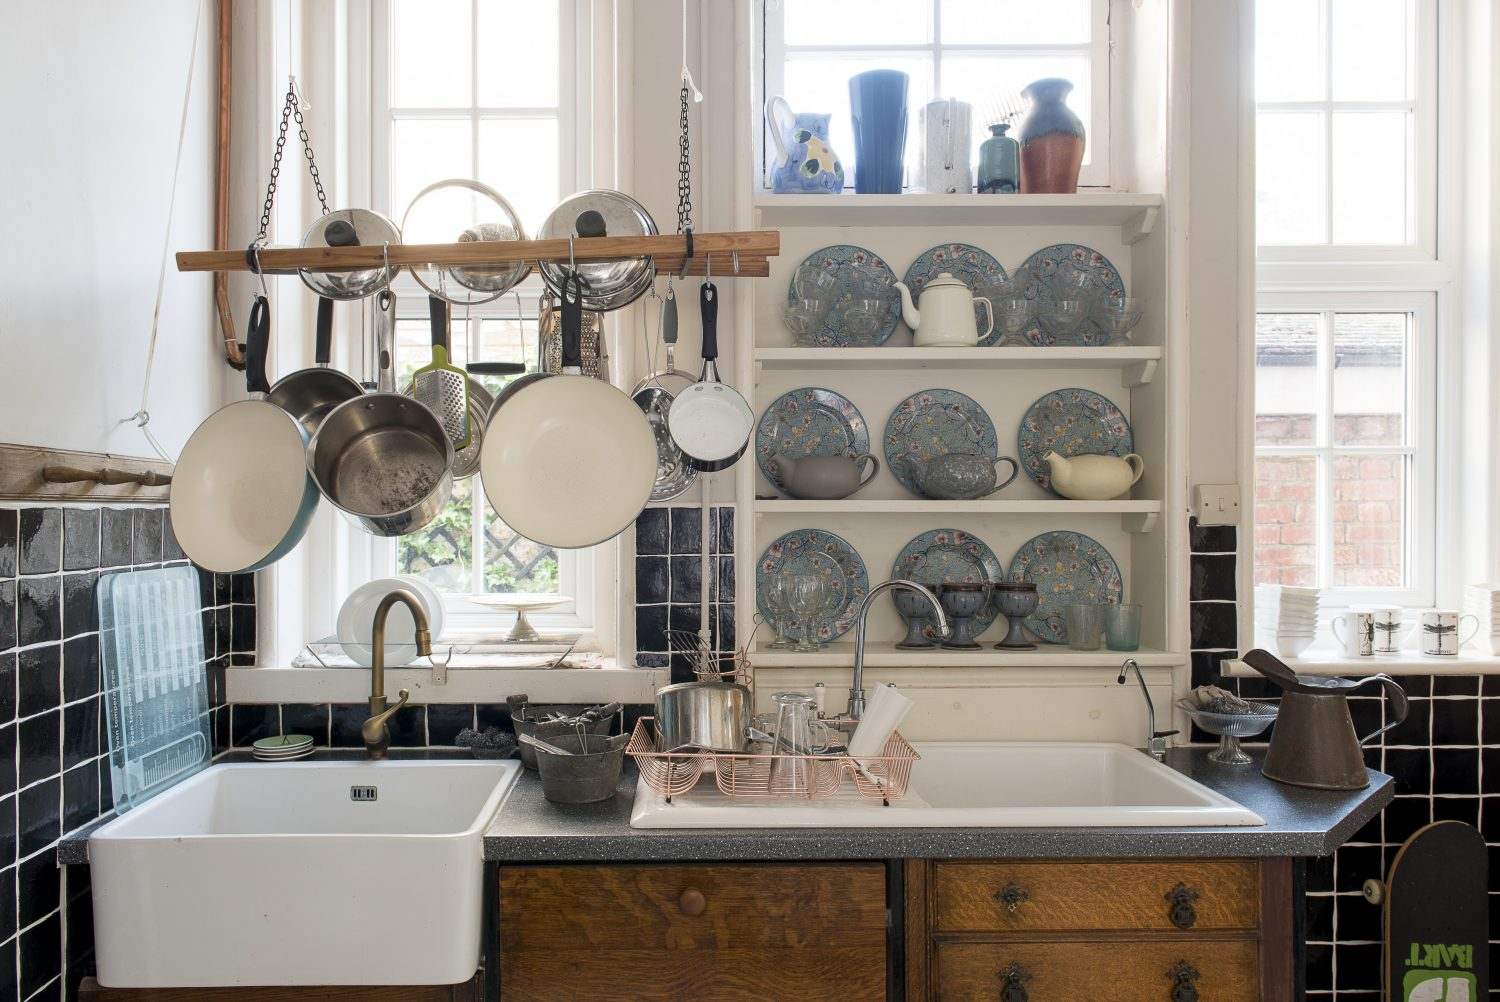 The kitchen has been constructed around re-purposed antique cabinets sourced in Kings Road, St Leonards